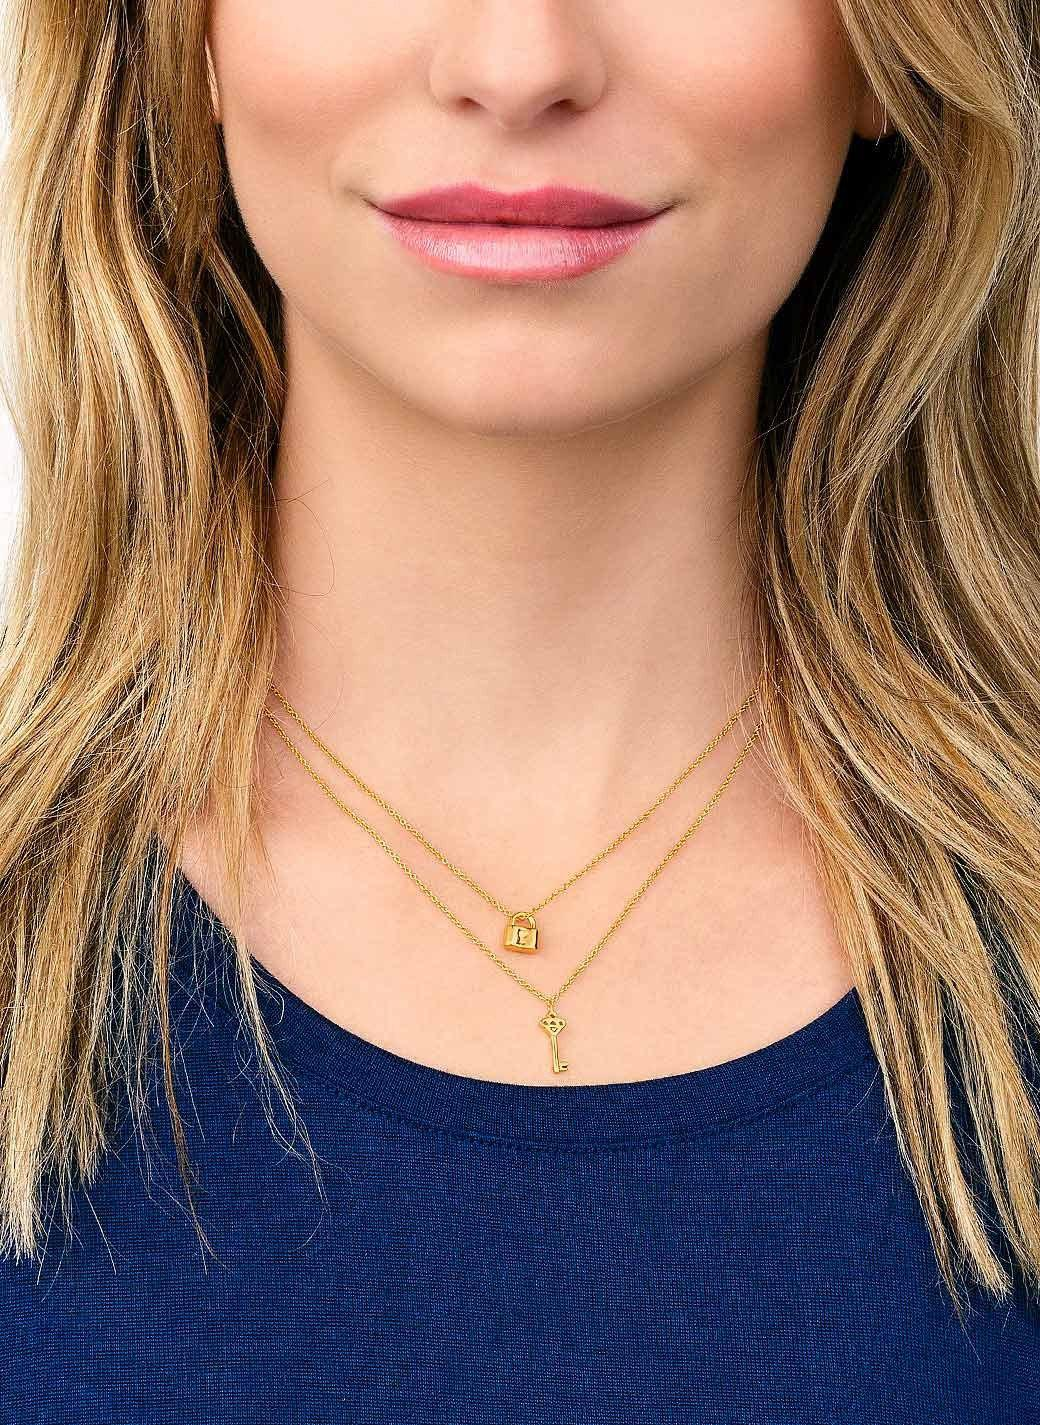 Gorjana & Griffin You + Me Lock And Key Necklace Set in Gold (Metallic)